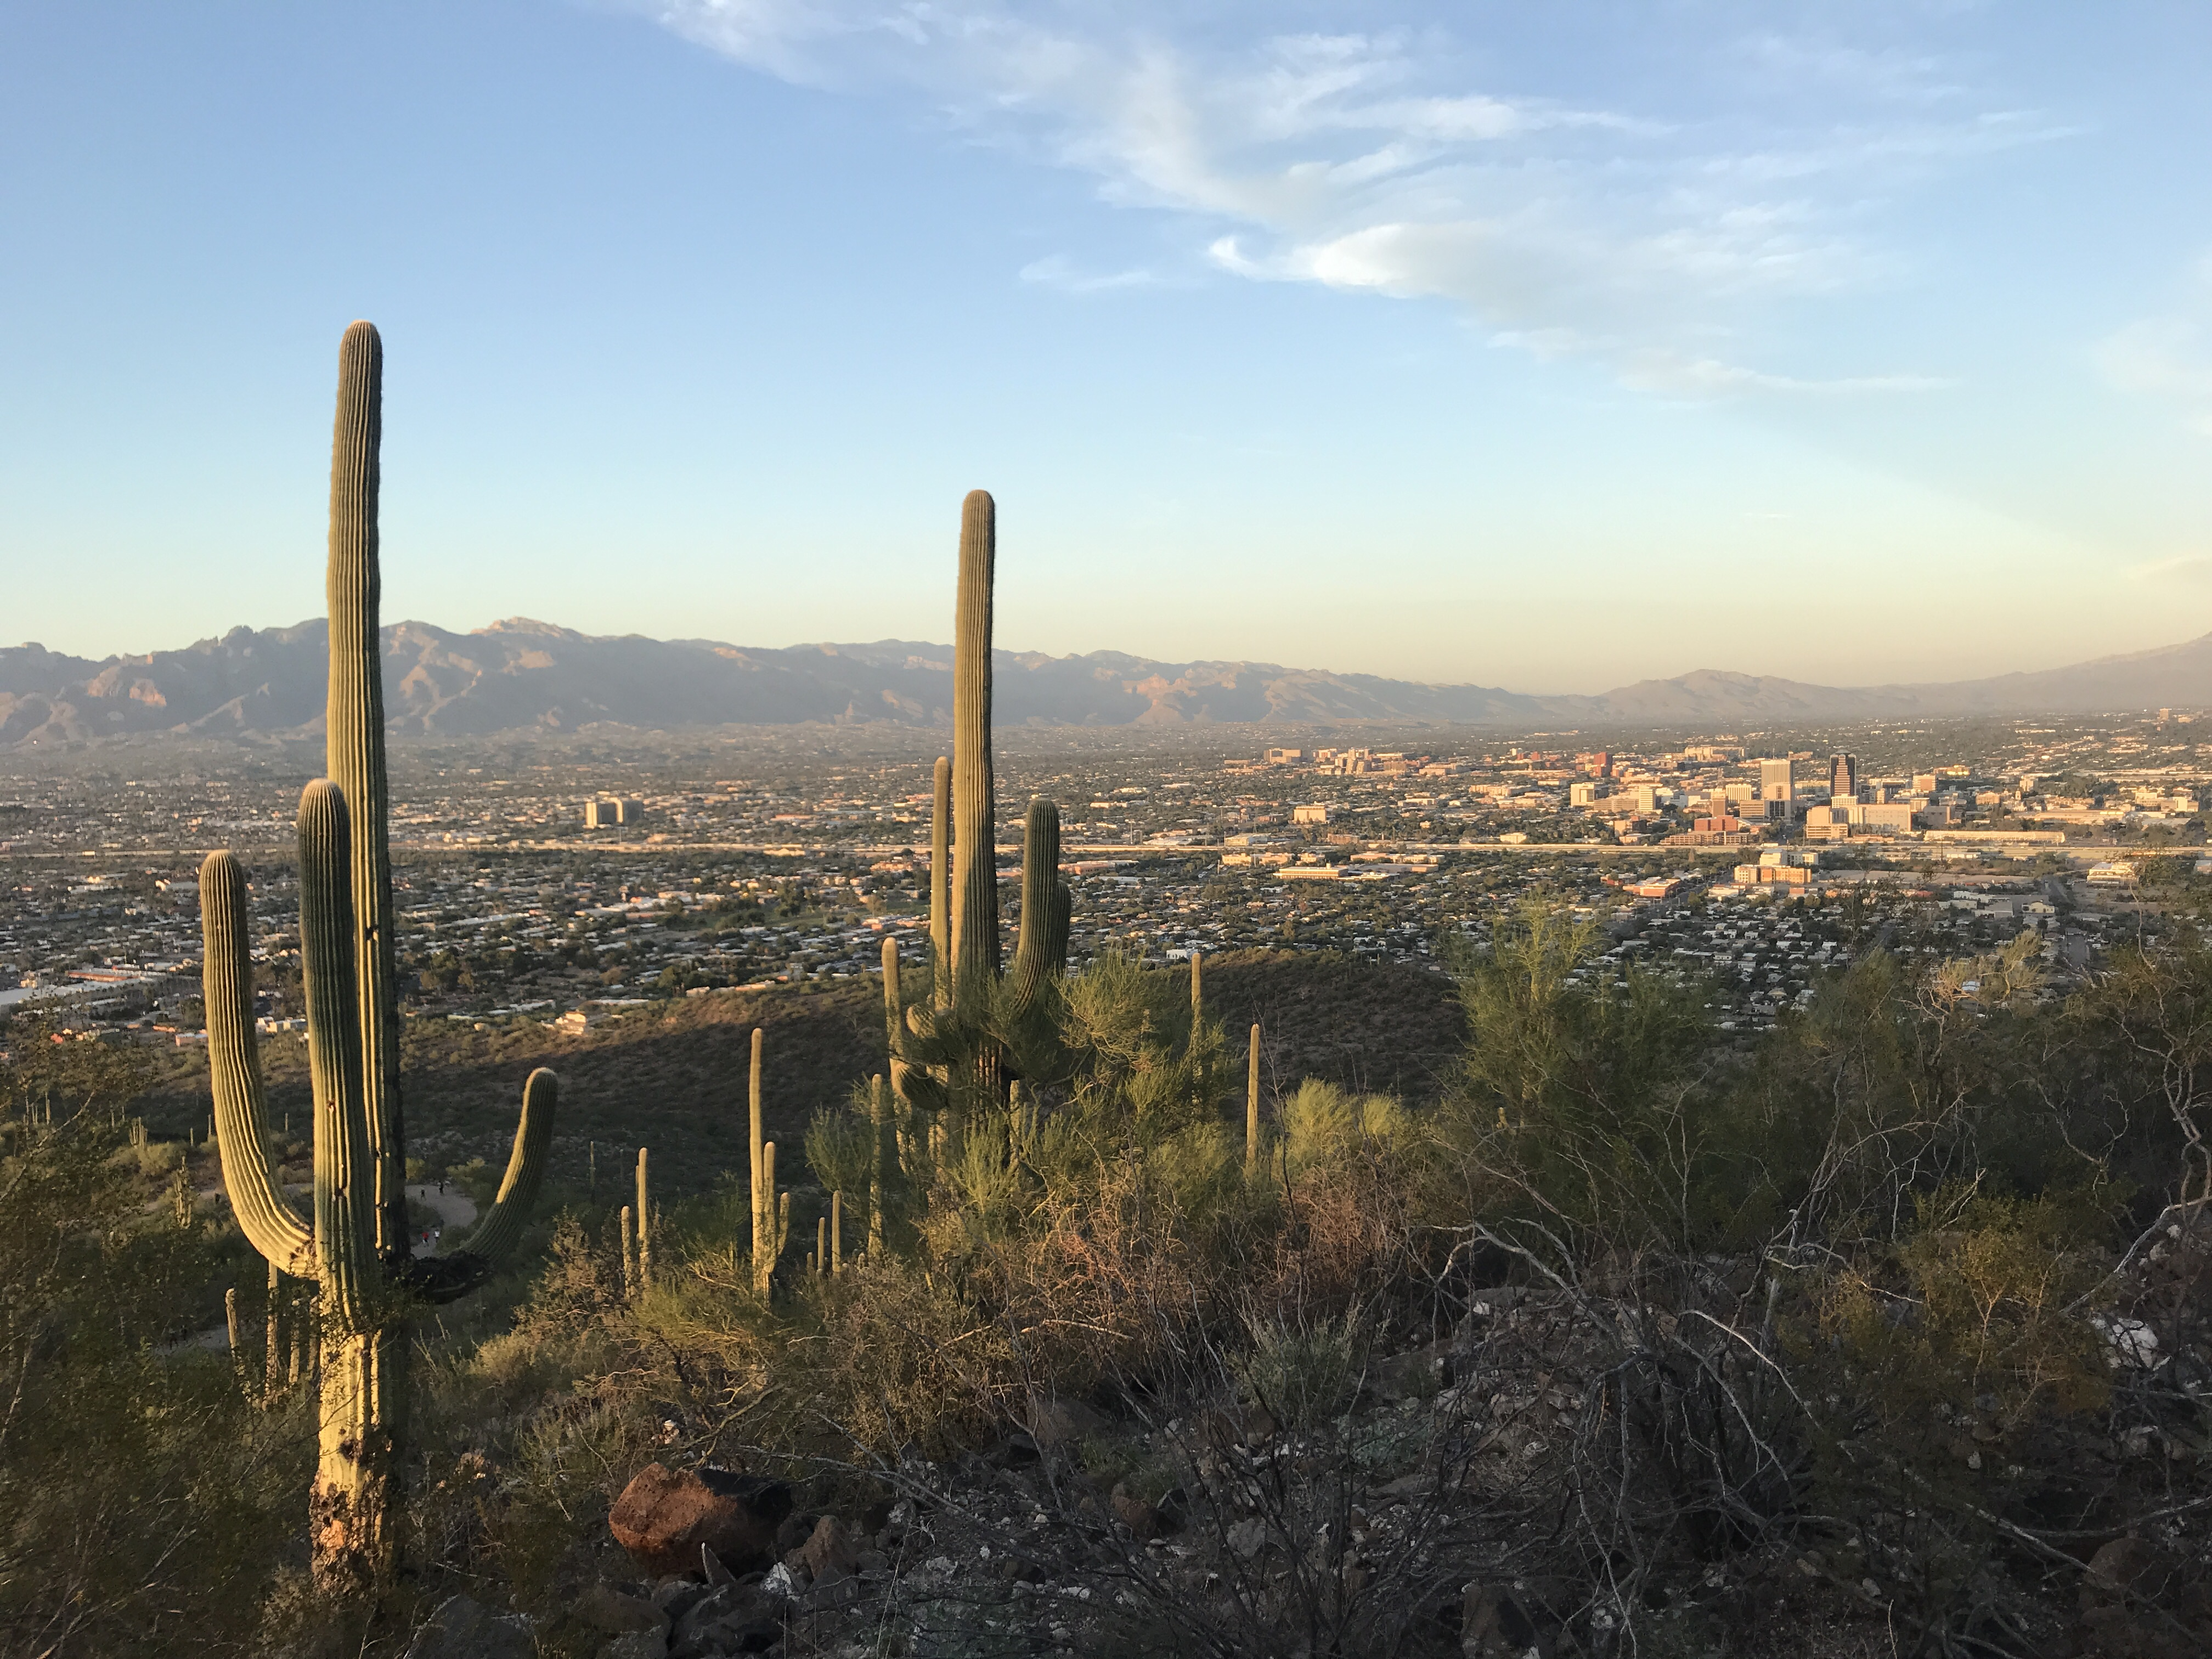 View from the top of our hike at Tumamoc Hill in Tucson, Arizona